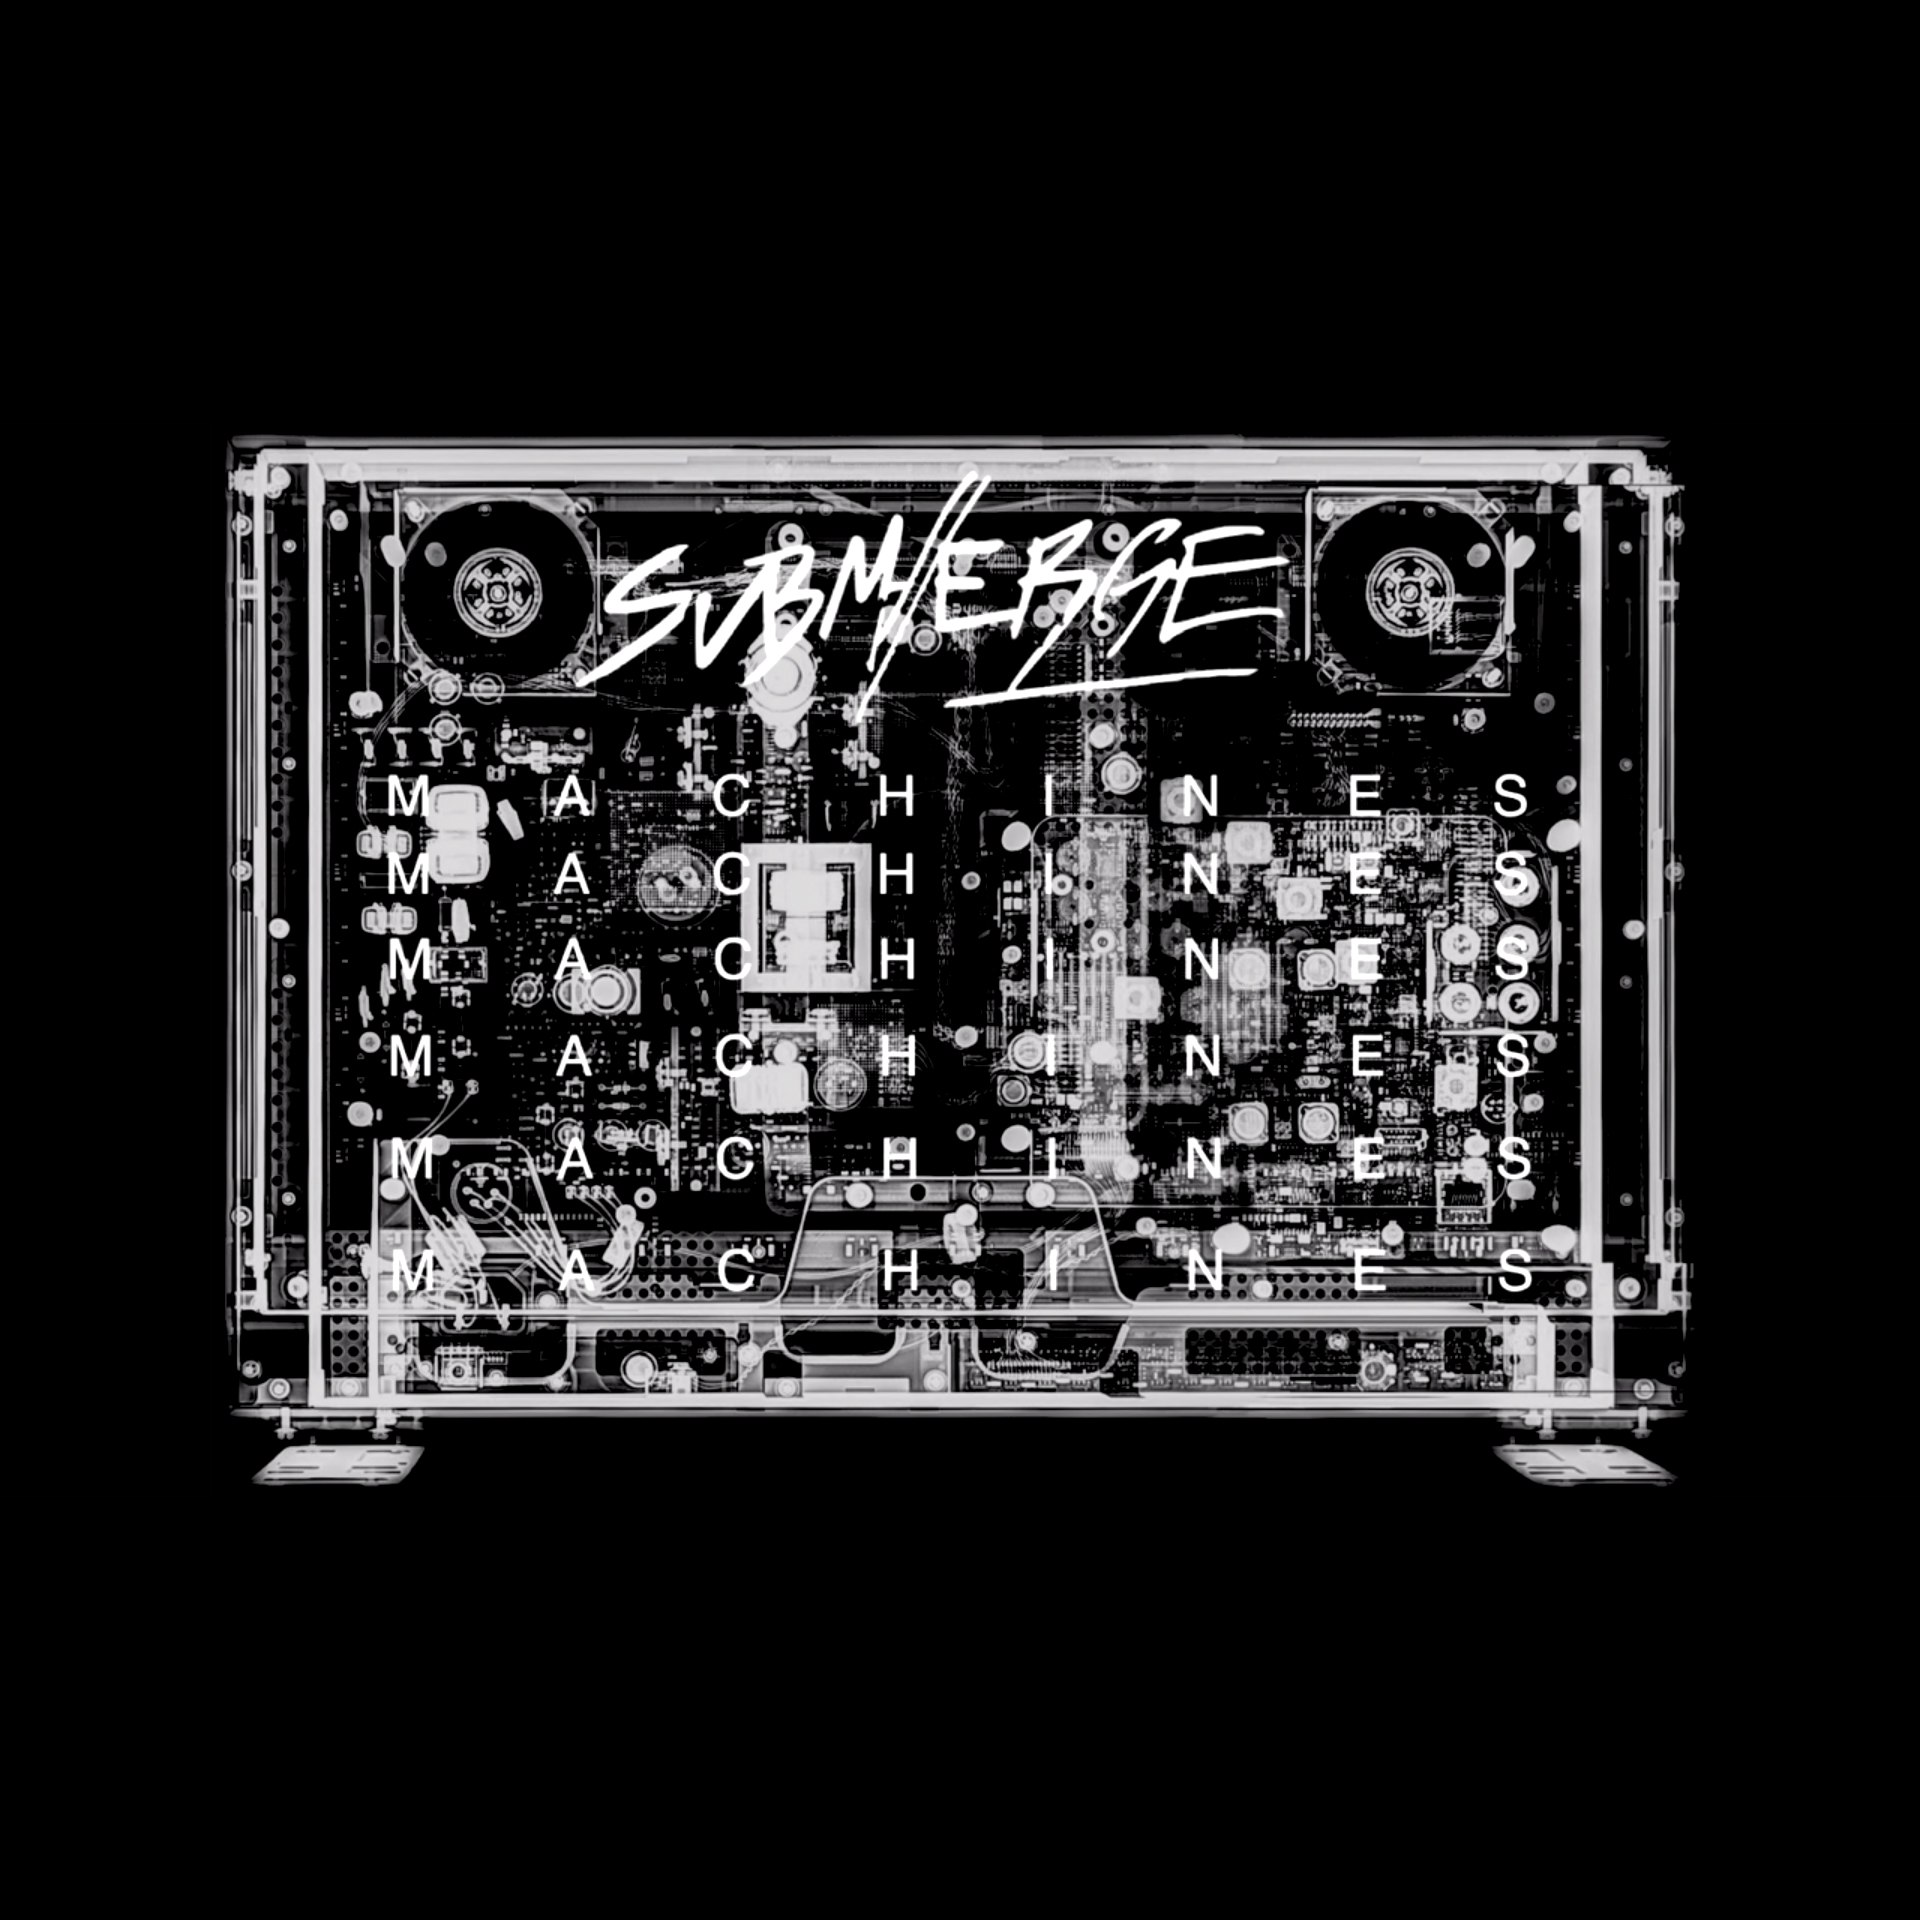 Submerge - Machines [single] (2016)